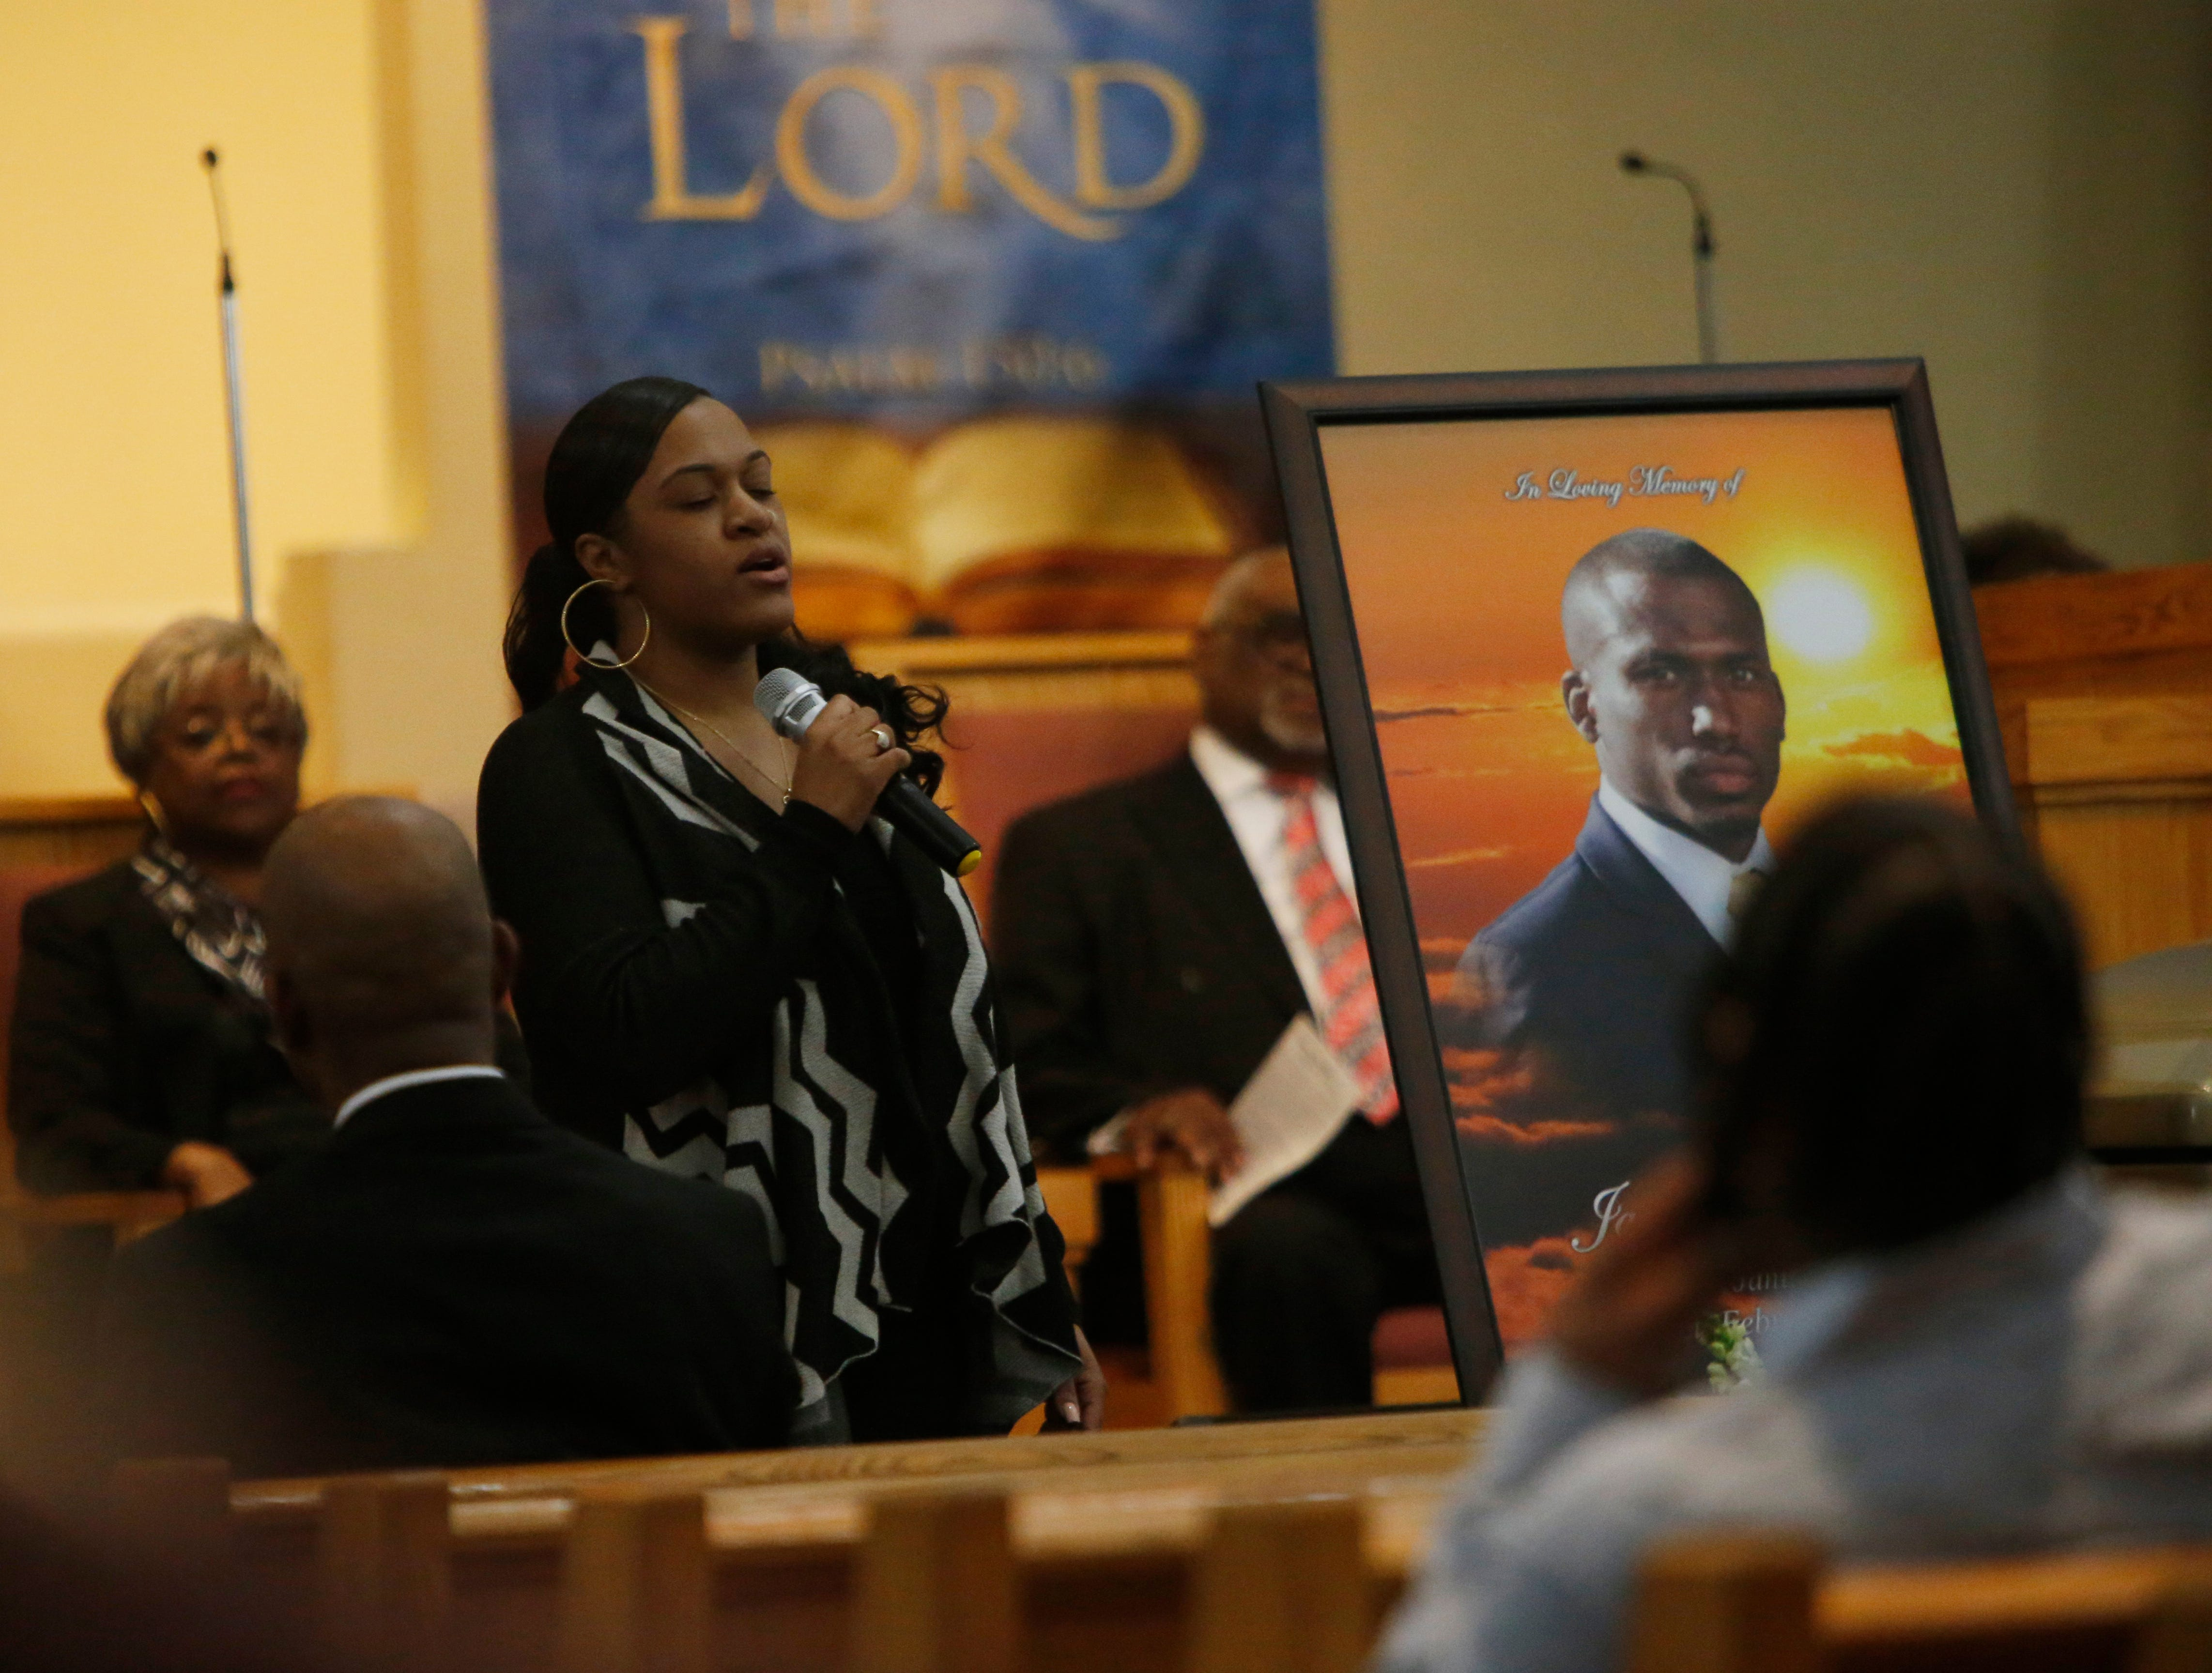 Tatyana Miller sings during Jaquan Cesar's funeral service at Beulah Baptist Church in the City of Poughkeepsie on February 22, 2019. Jaquan died on Feb 11th while attempting to help a stranded motorist on the Cross Bronx Expressway.